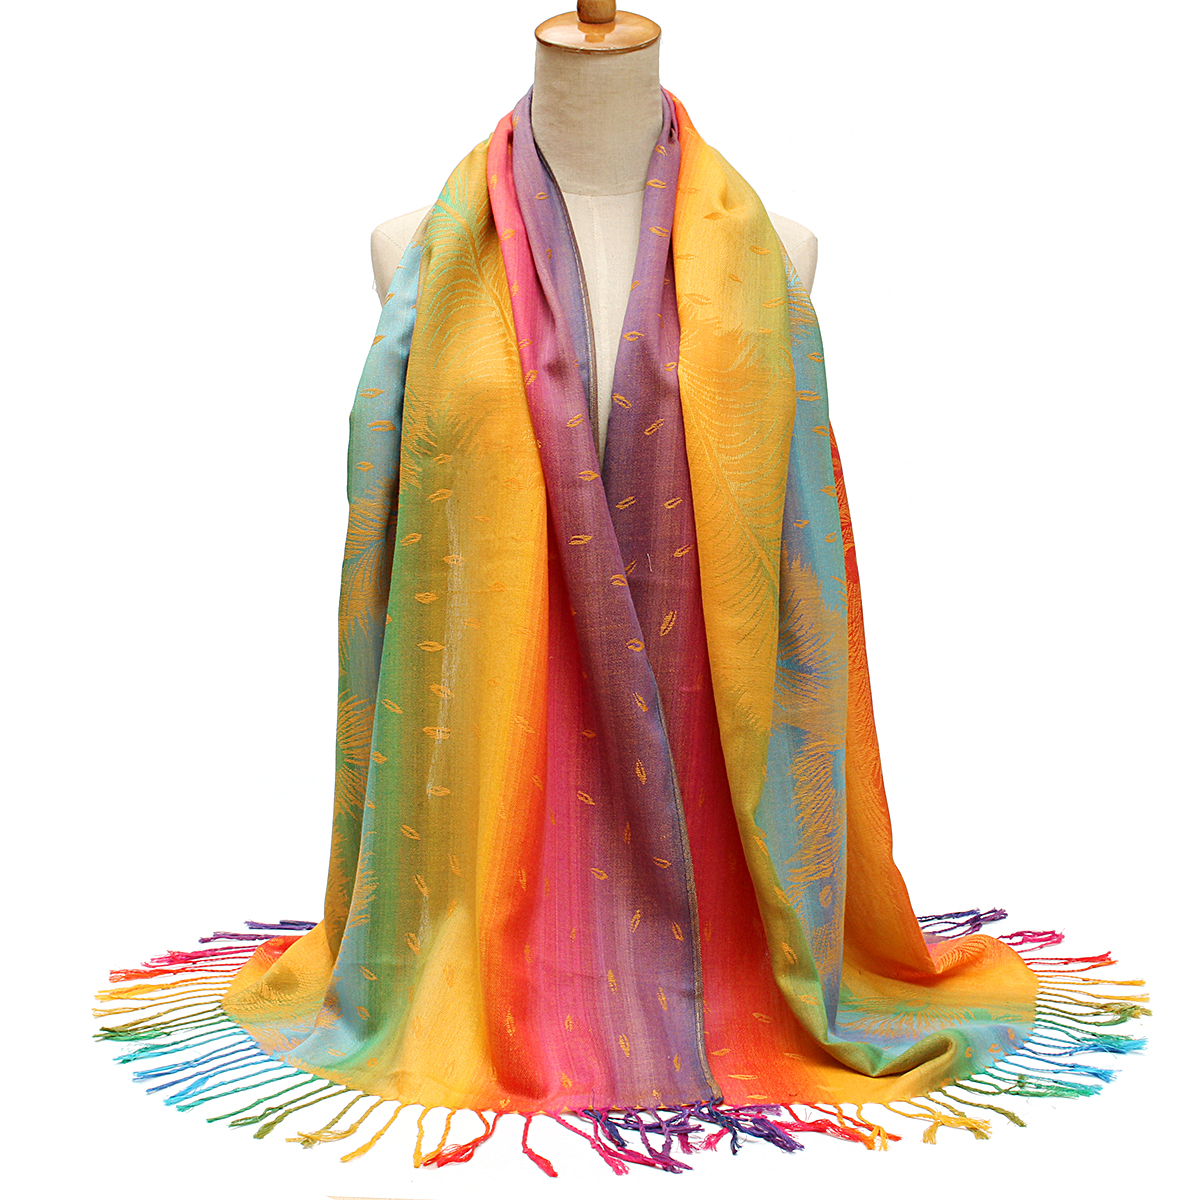 Women Ladies Cotton Mixed Color Feather Printed Tassel Scarves Colorful Stole Shawl Wrap Scarf